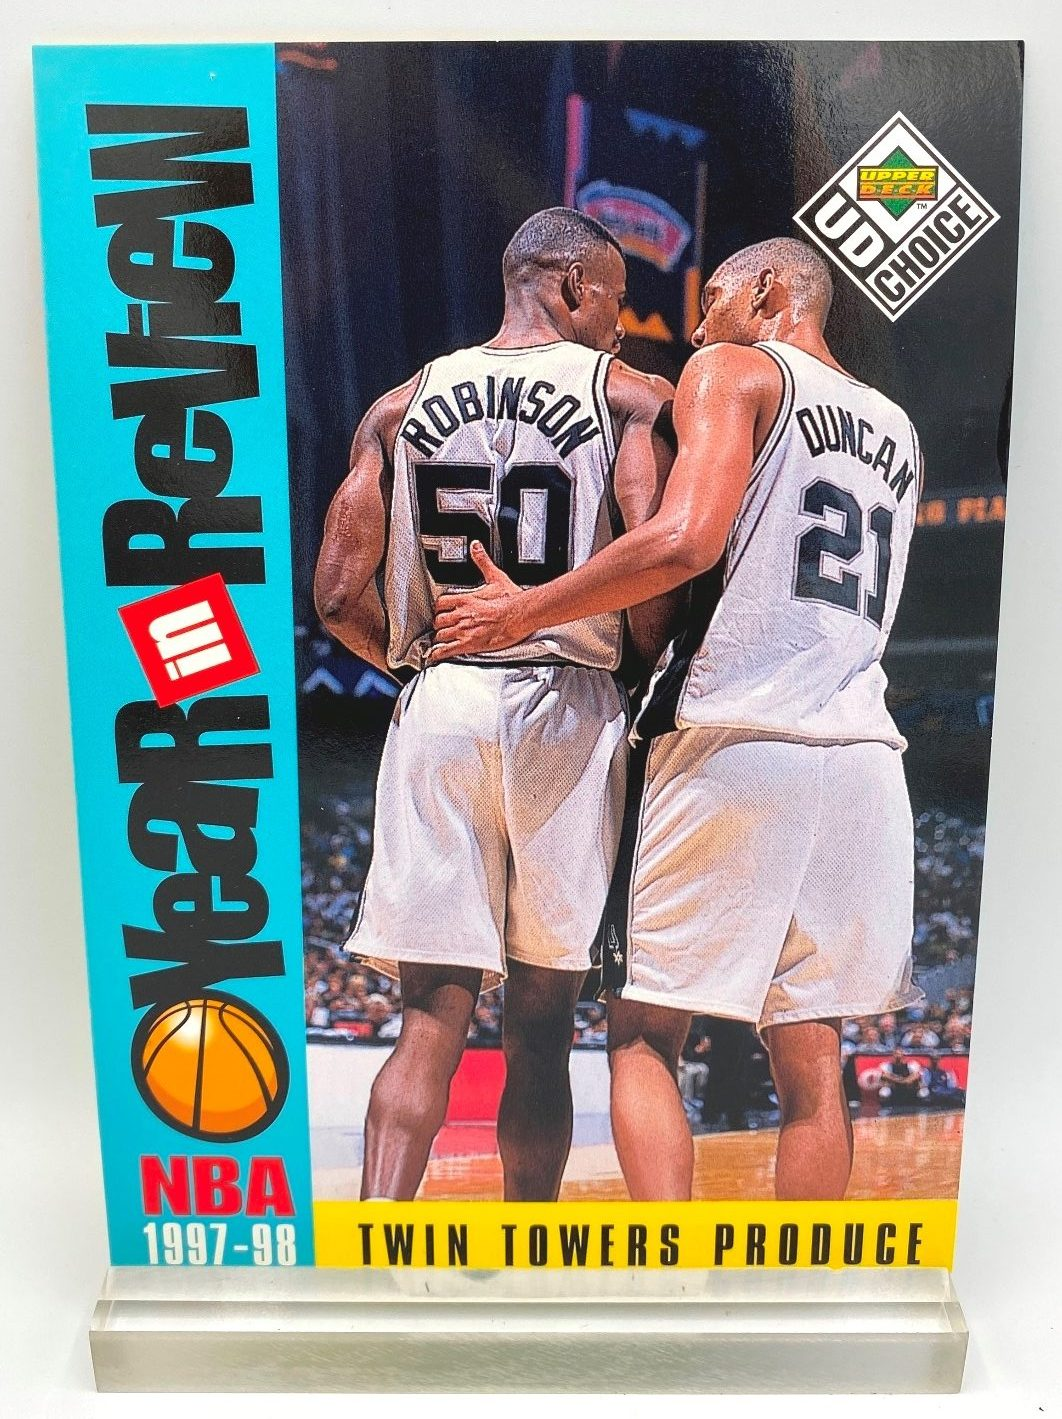 1997-98 Upper Deck NBA Twin Towers Produce (Robinson-Duncan) Year In Review 5x7 (1pc) Card # R3 (1)